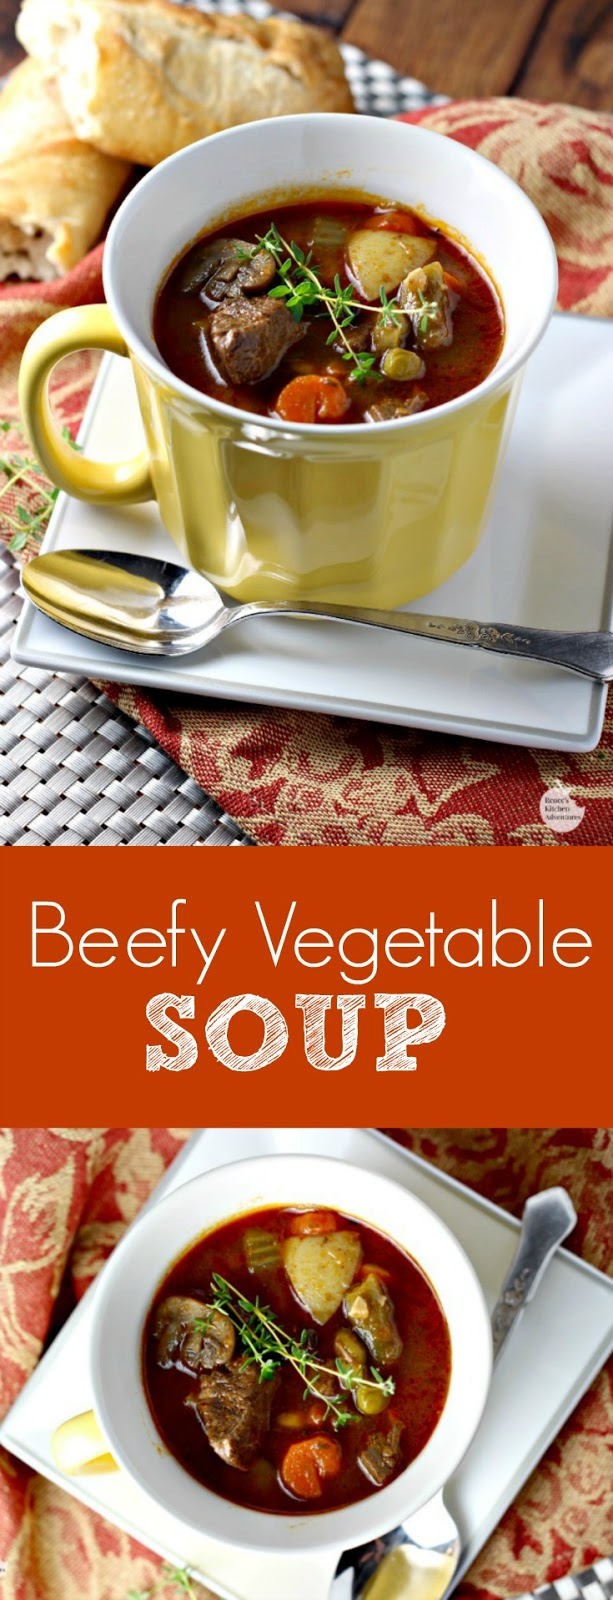 Beefy Vegetable Soup | by Renee's Kitchen Adventures - easy recipe for classic beef vegetable soup full of veggies with a rich broth